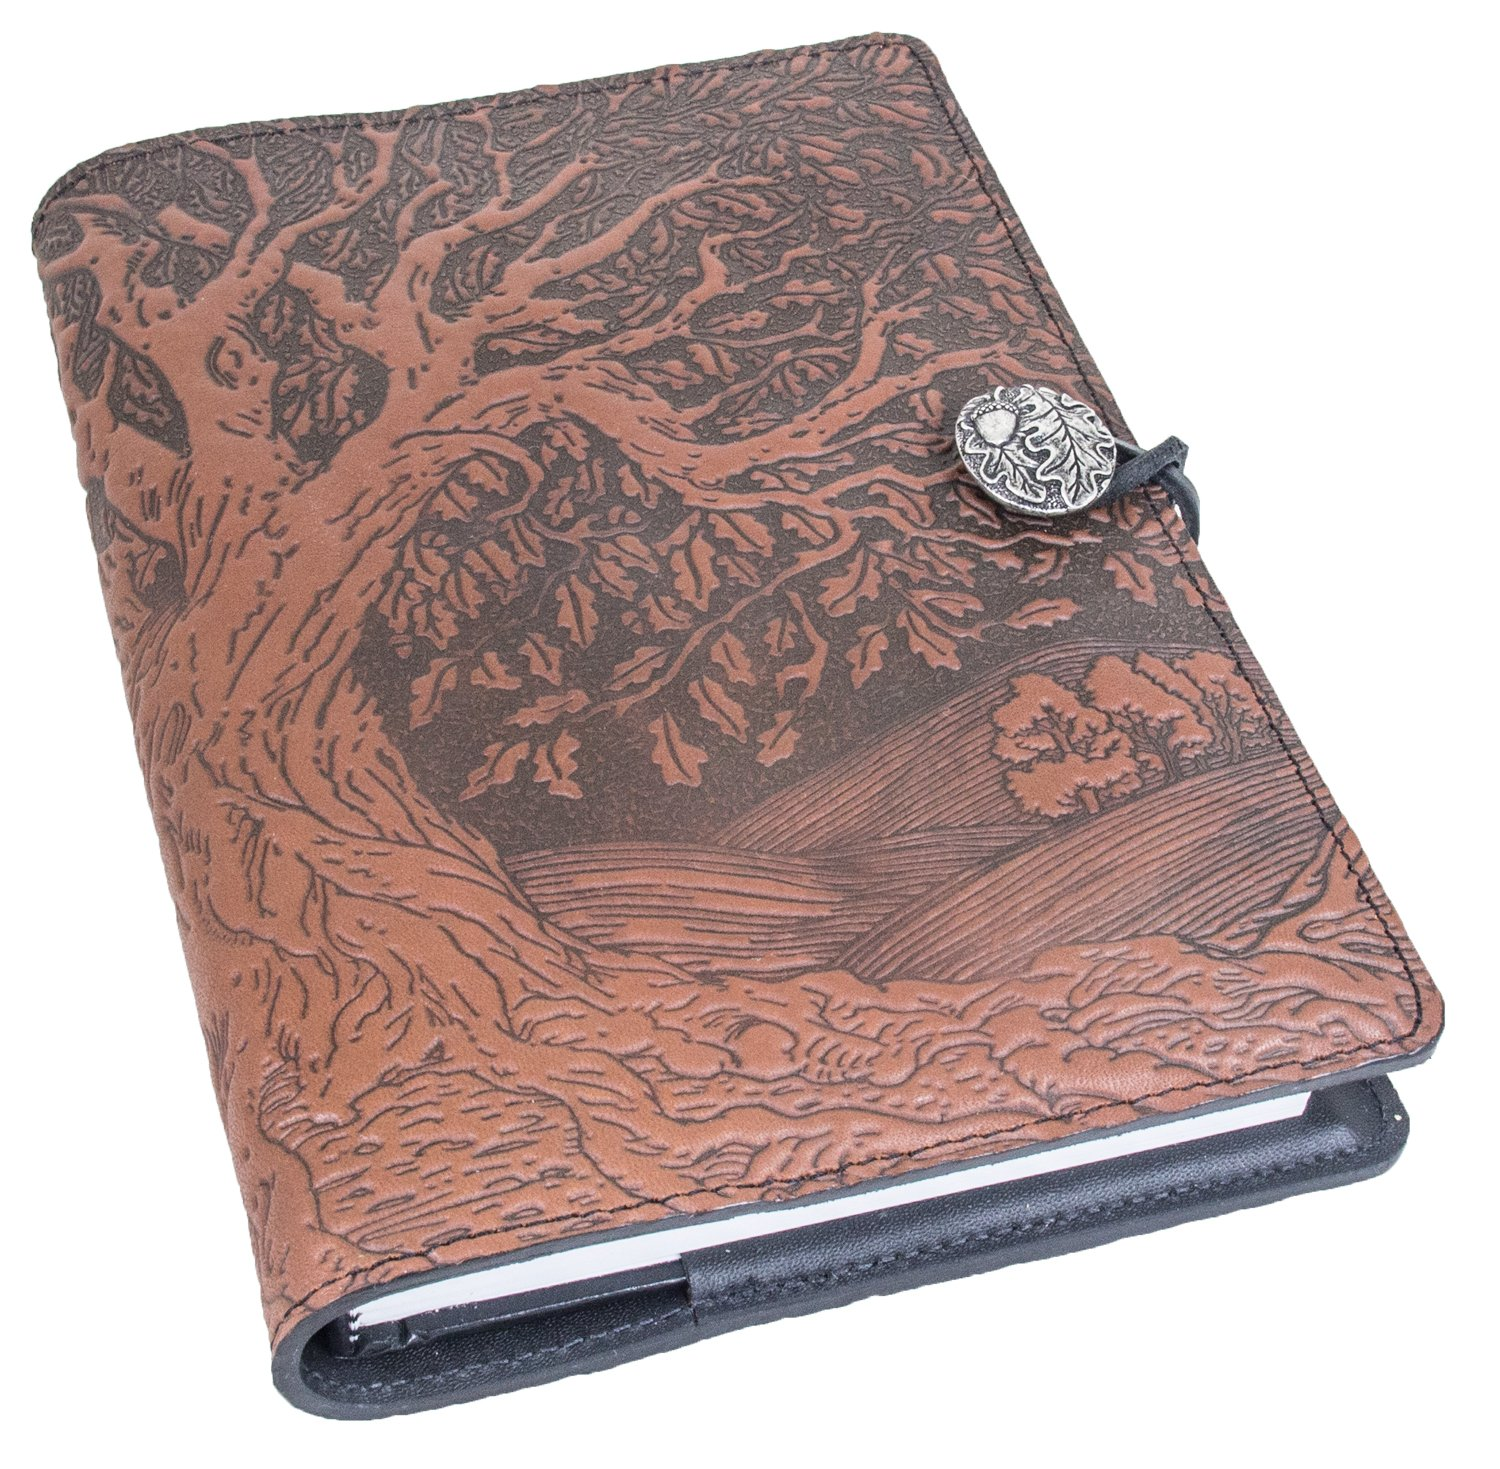 Genuine Leather Refillable Journal Cover + Hardbound Blank Insert - 6x9 Inches - Tree of Life, Saddle With Pewter Button - Made in the USA by Oberon Design